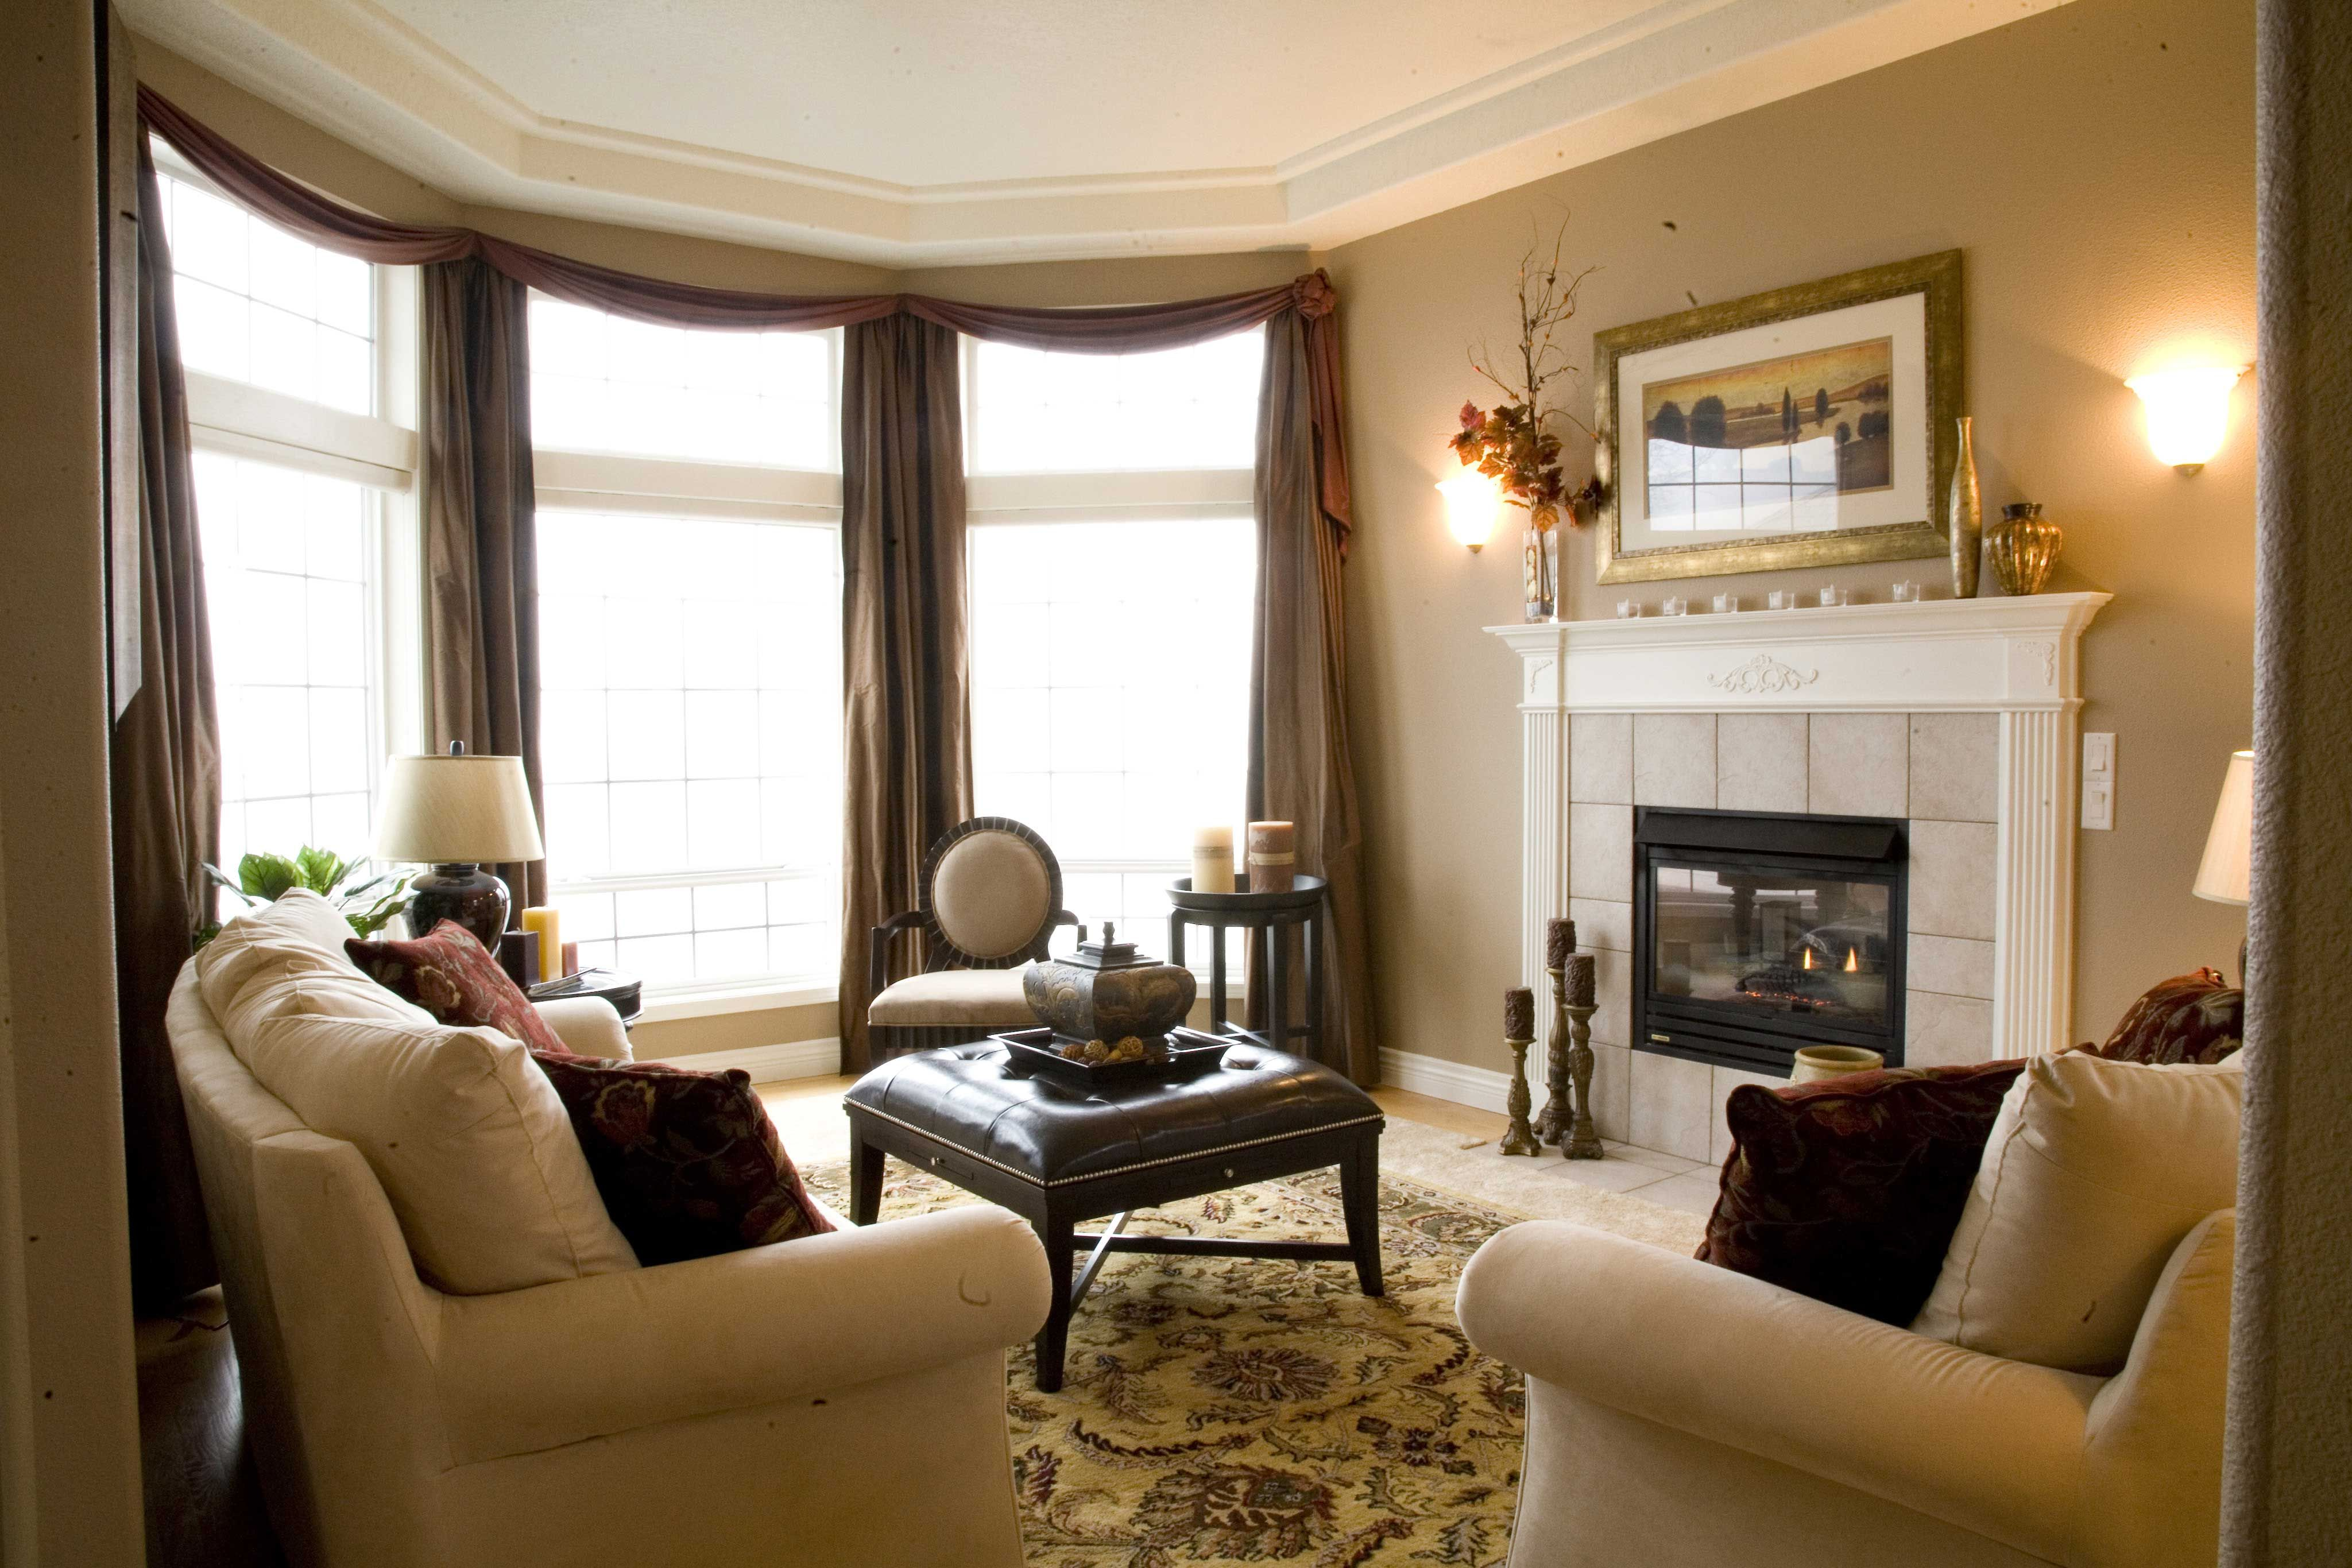 Italian Influenced Living Room Taupe Walls Neutral Furniture - Taupe living room